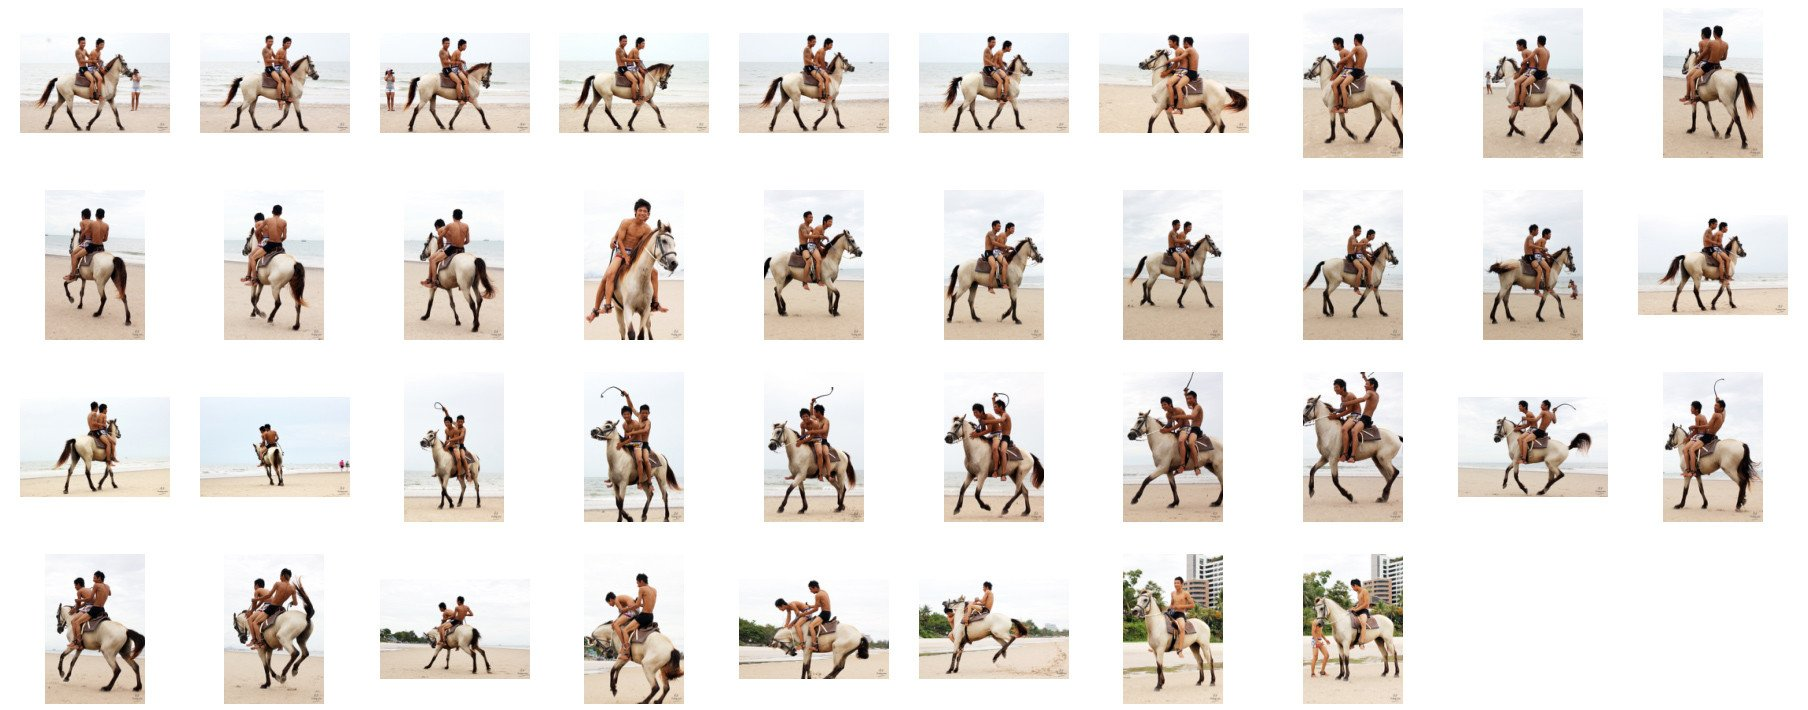 David and Thaksin in Shorts Riding Double with Saddle on Buckskin Horse, Part 8 - Riding.Vision